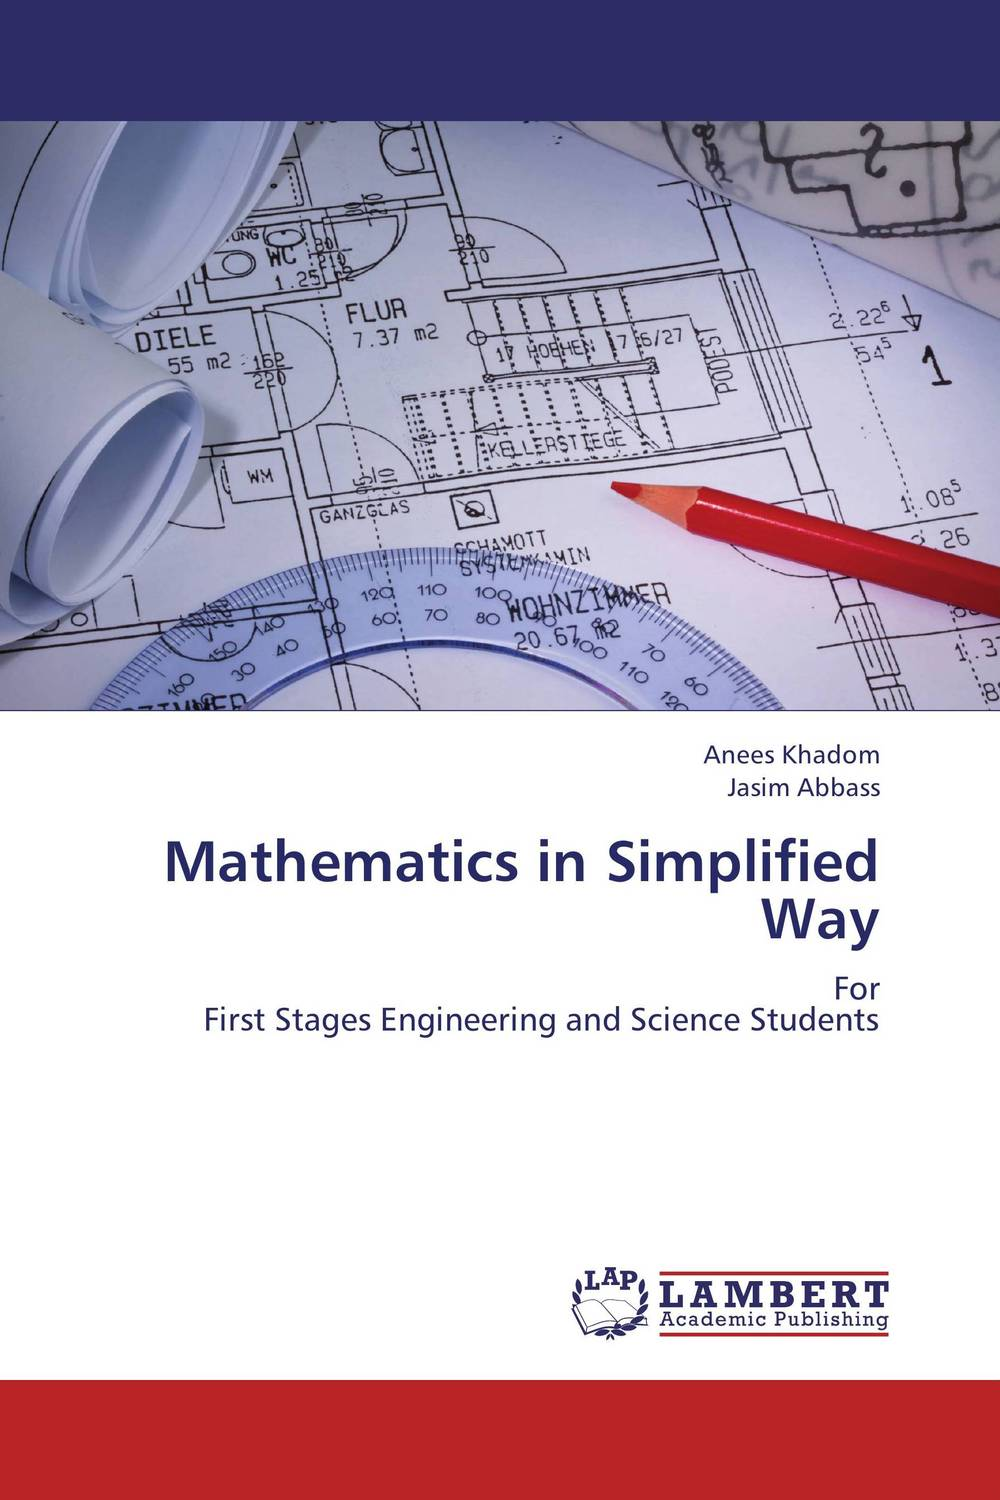 Mathematics in Simplified Way practical manual on applied mathematics